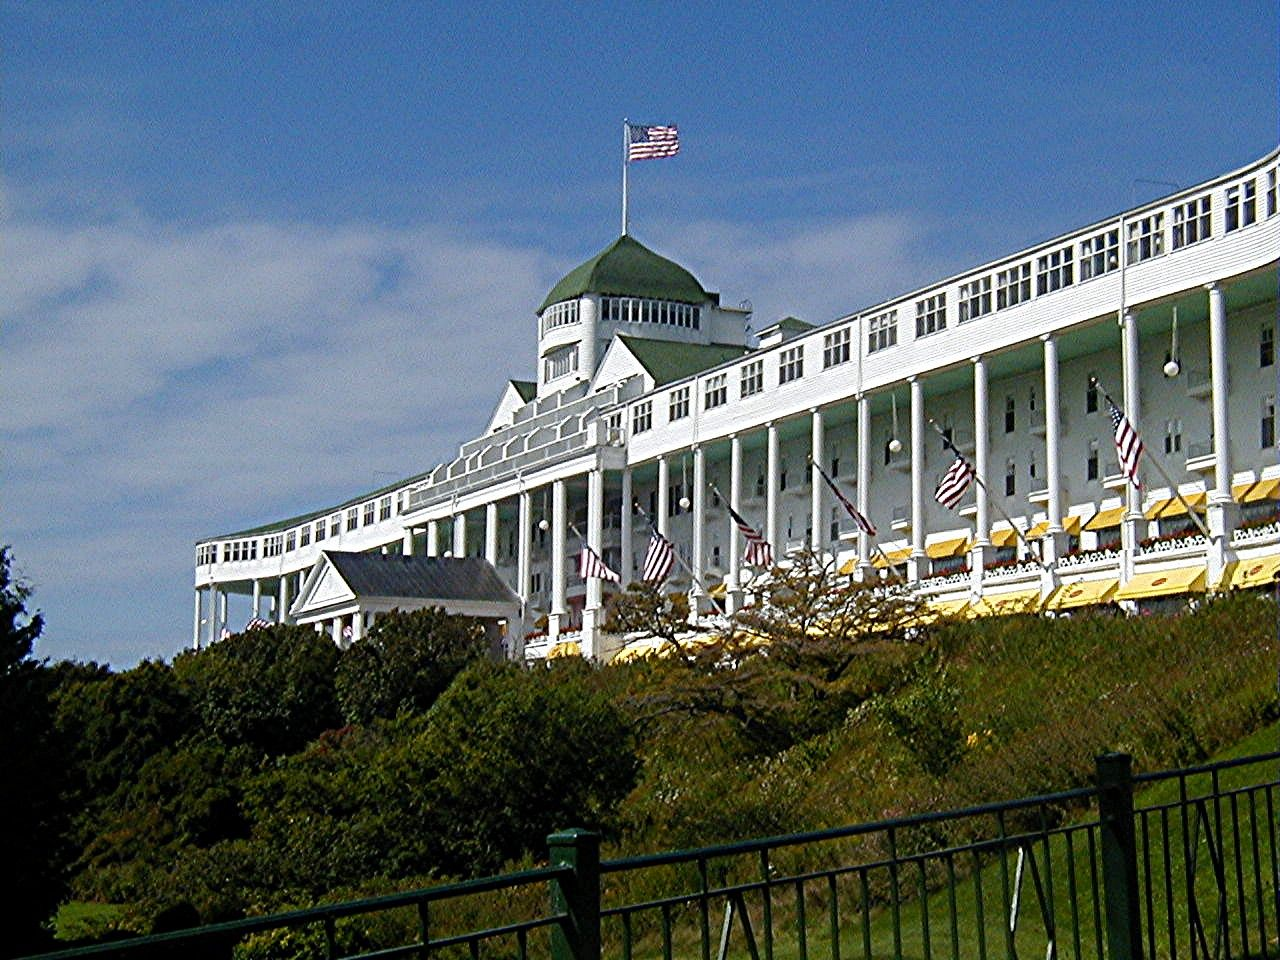 Grand Hotel With Images Mackinac Island Mackinaw City Grand Hotel